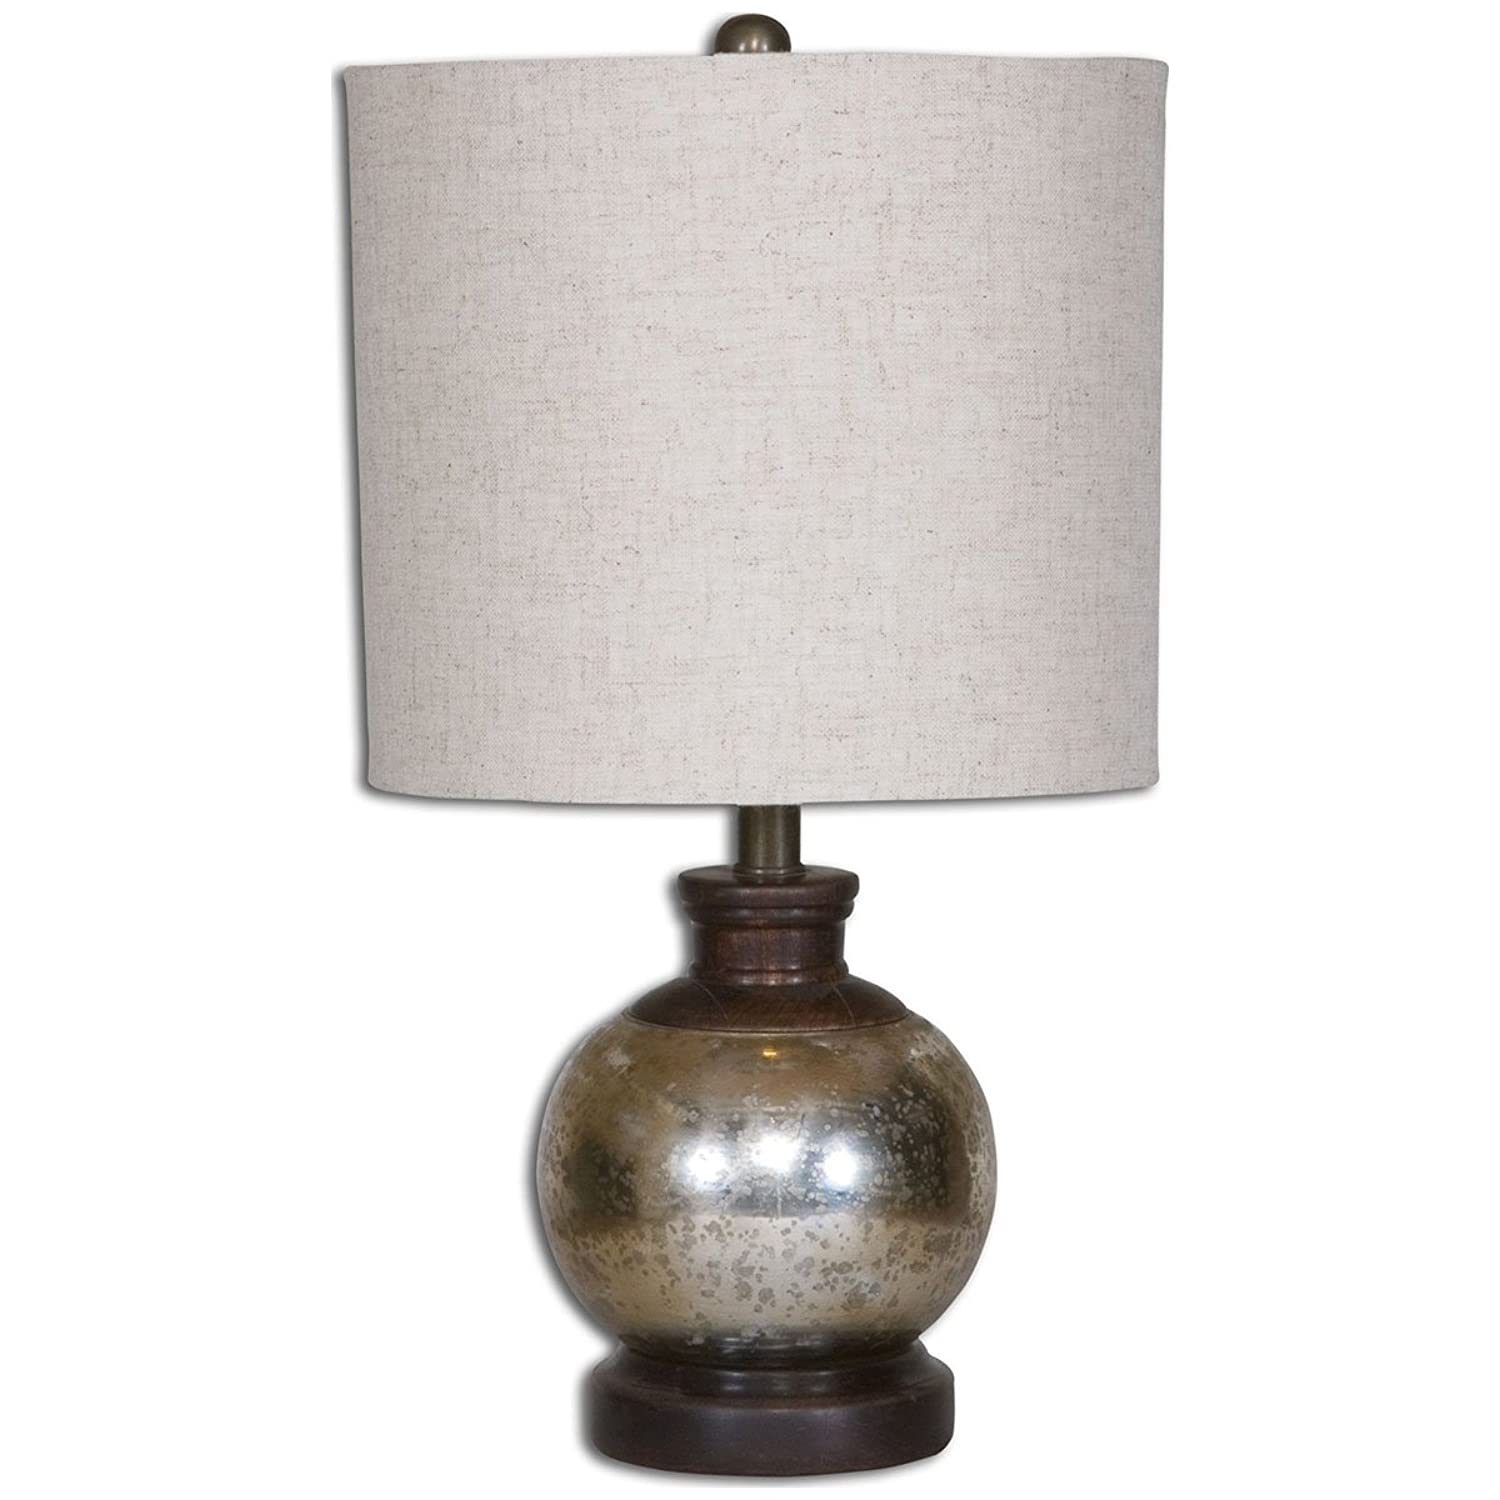 Uttermost 26208-1 Arago Antique Glass Table Lamp by Uttermost